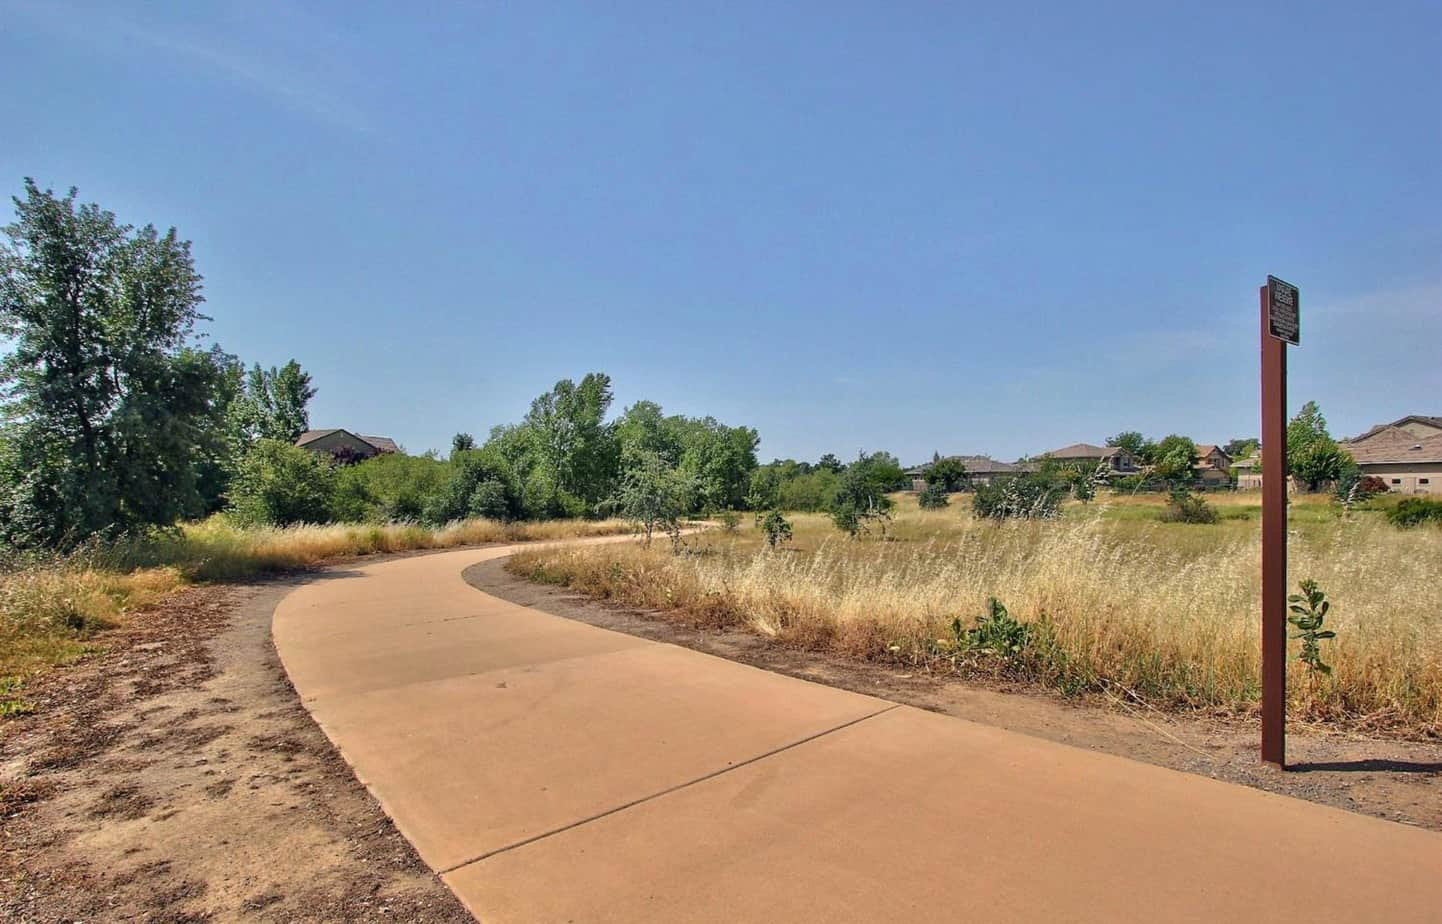 r Roseville Real Estate Agent Kaye Swain shares MLS 16034679 house for sale in Lincoln California walking trail nearby